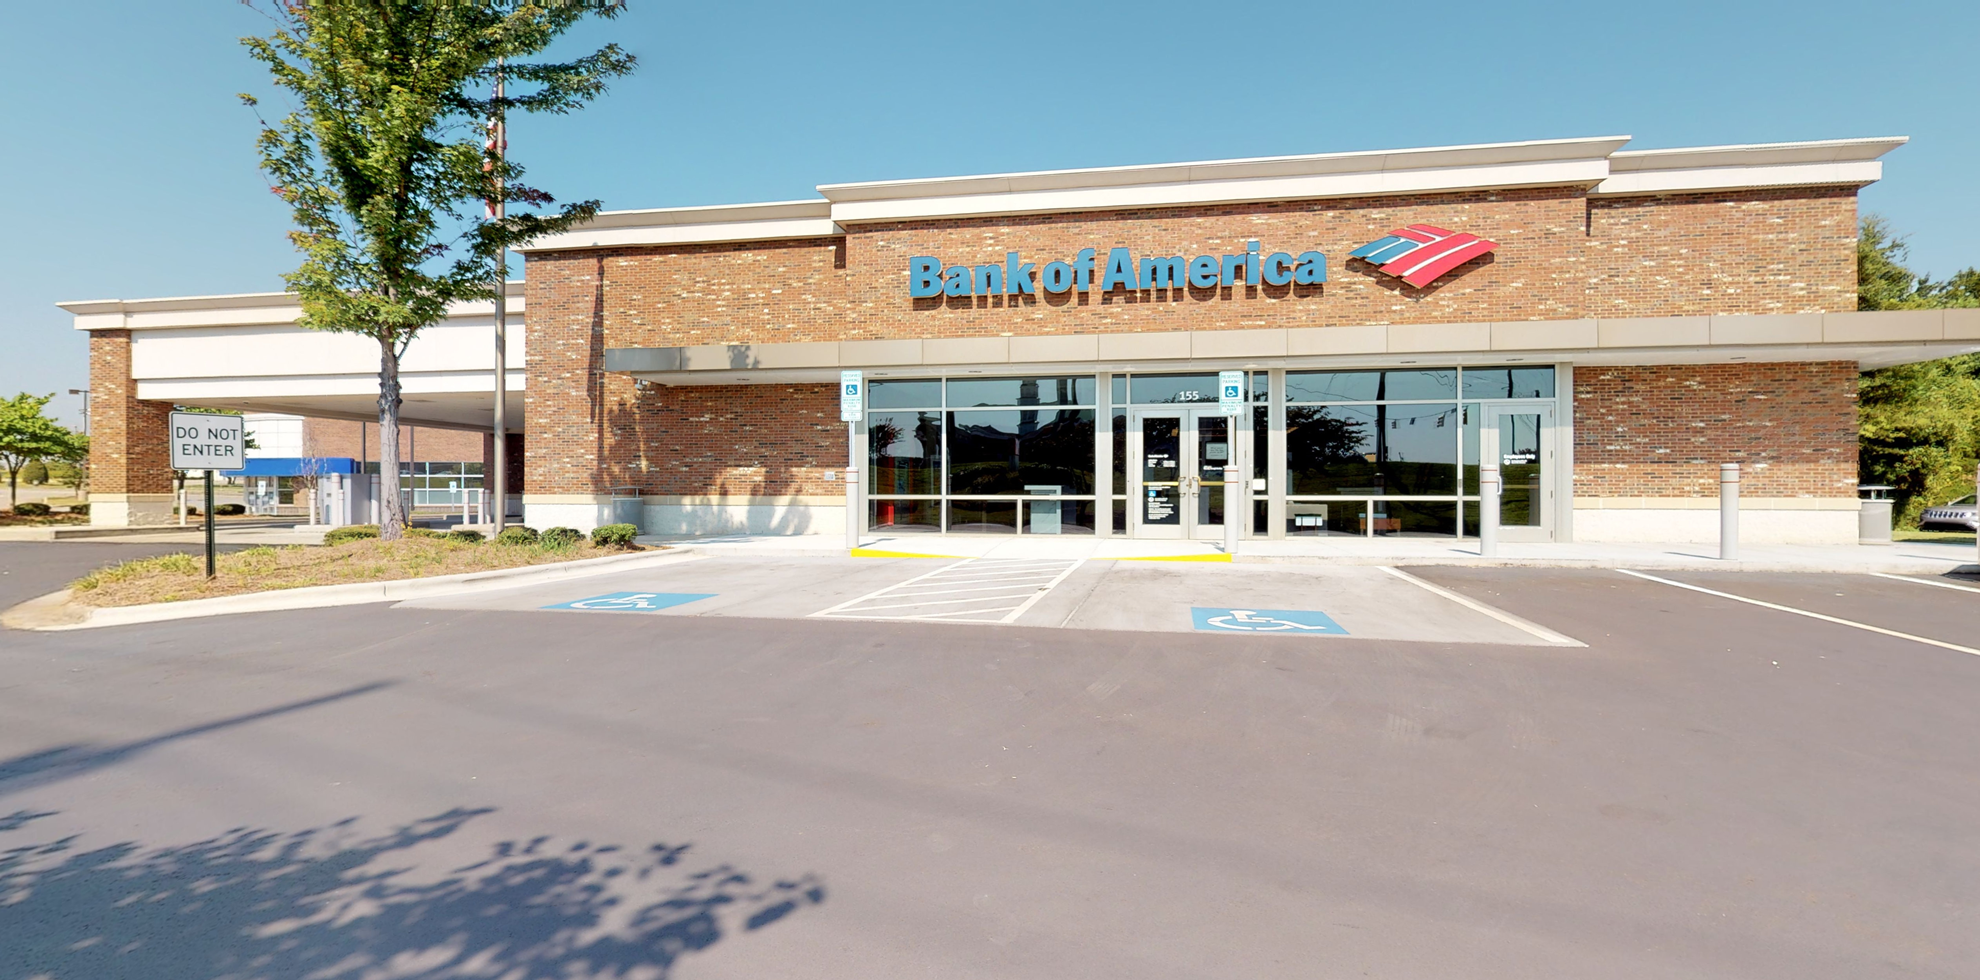 Bank of America financial center with drive-thru ATM   155 Town Center Dr, Mooresville, NC 28117